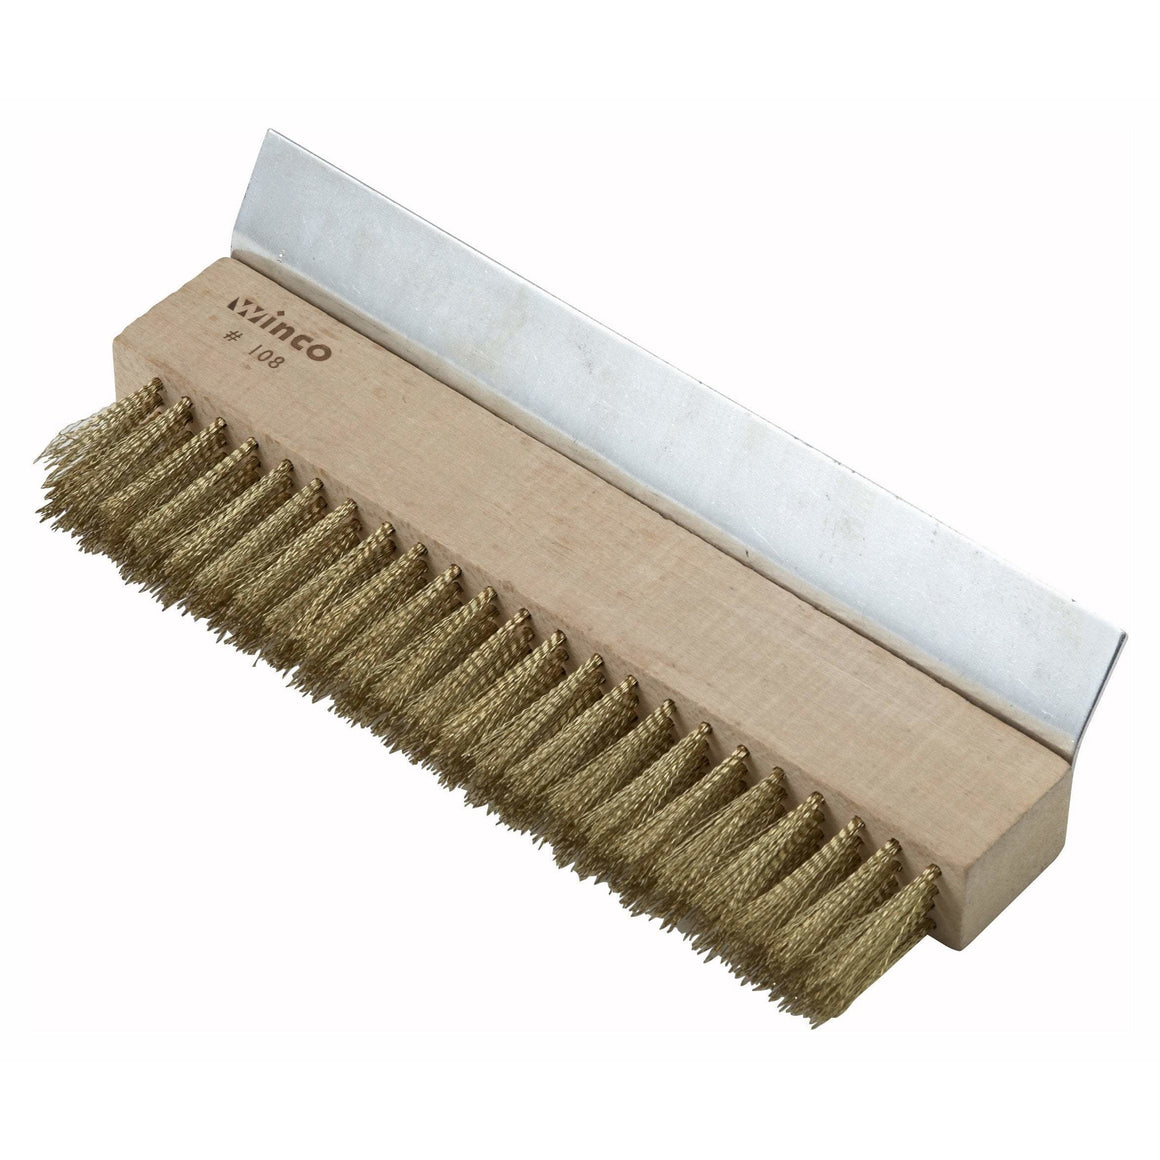 Winco - BR-10 - Pizza Oven Brush Head, Brass Bristles w/Scraper - Pizza Supplies